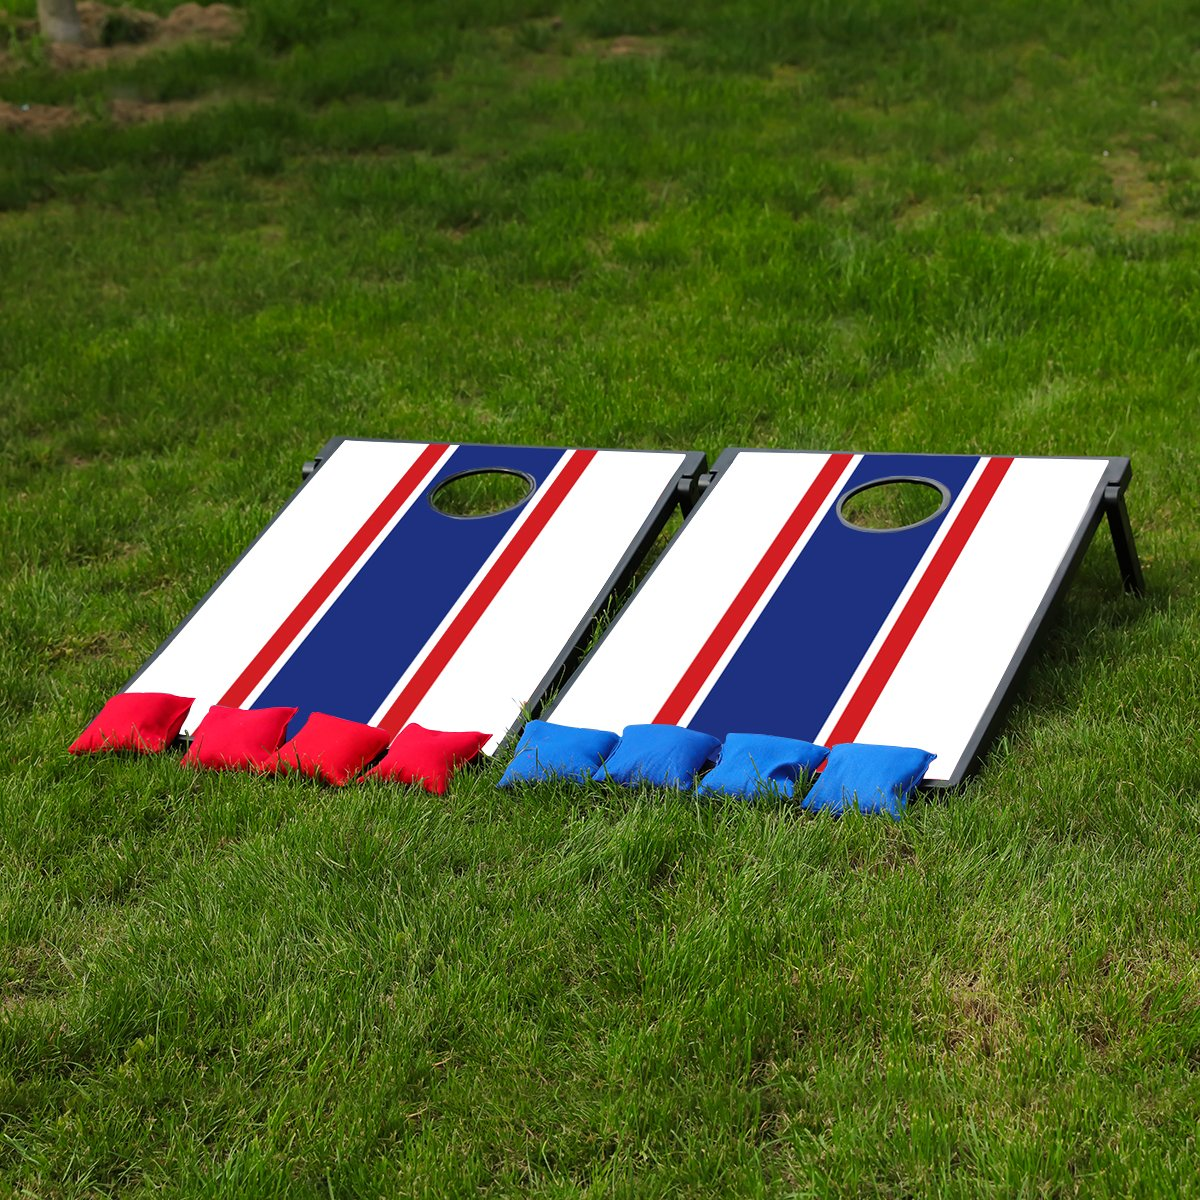 Sports Festival CornHole Board Bean Bag Toss Game Set and Tic Tac Toe 2 Games In 1 … (Blue and Red) by Festival Depot